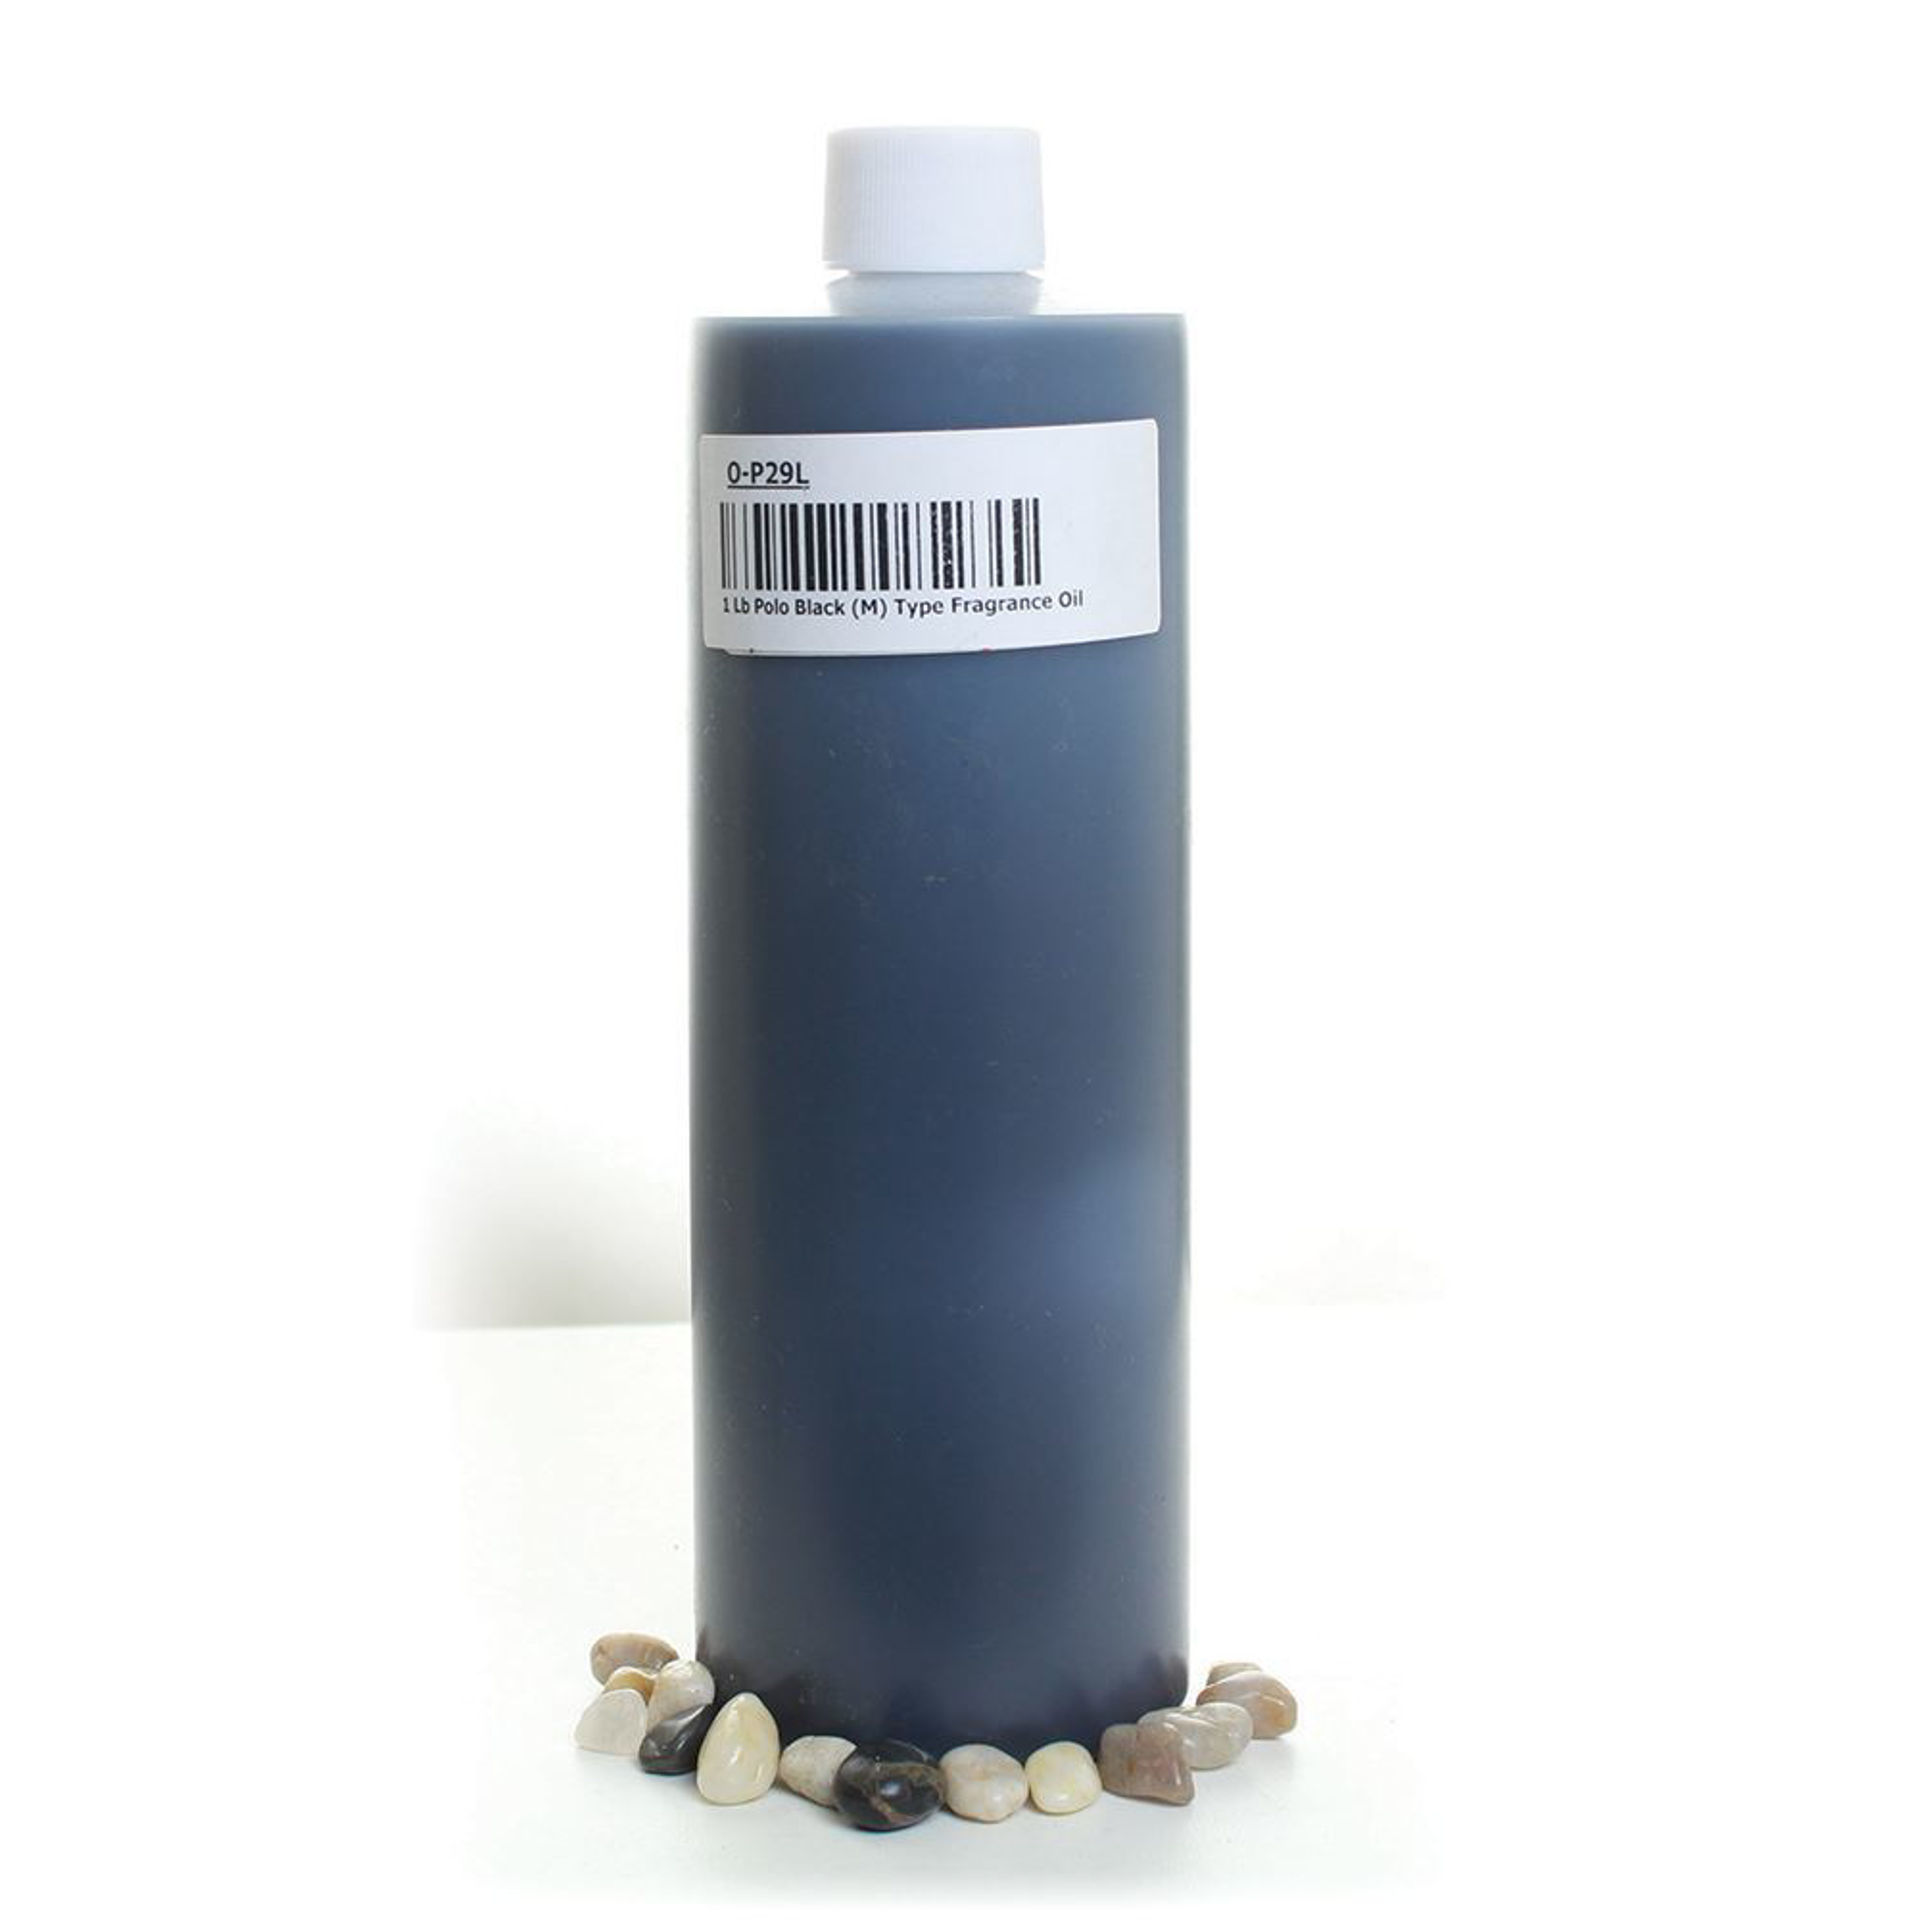 Picture of 1 Lb Polo Black (M) Type Fragrance Oil